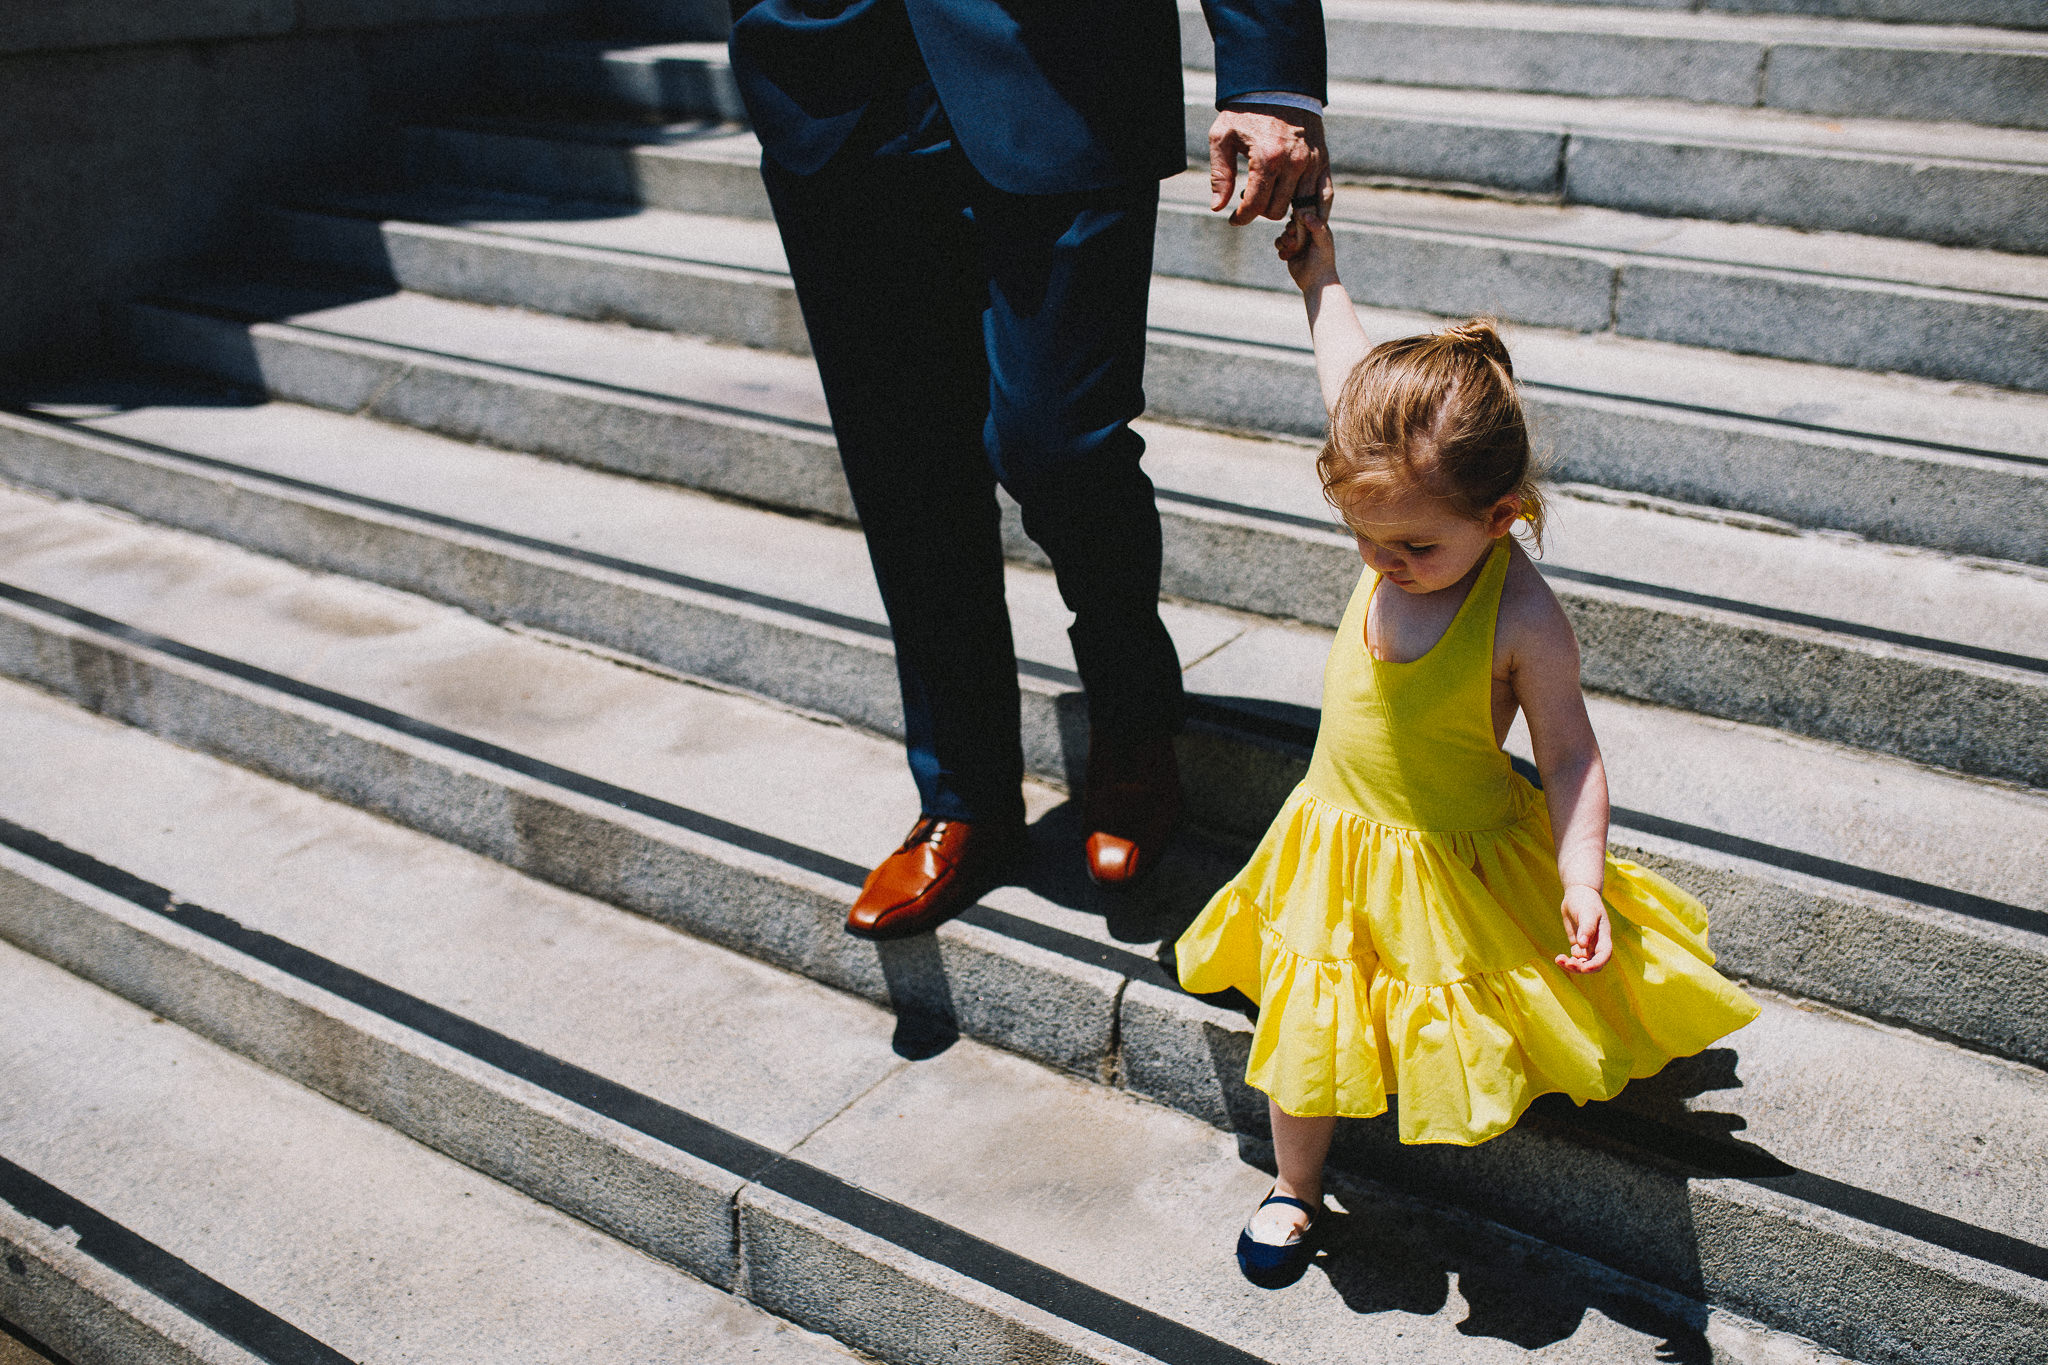 Archer Inspired Photography SF City Hall Elopement Wedding Lifestyle Documentary Affordable Photographer-242.jpg